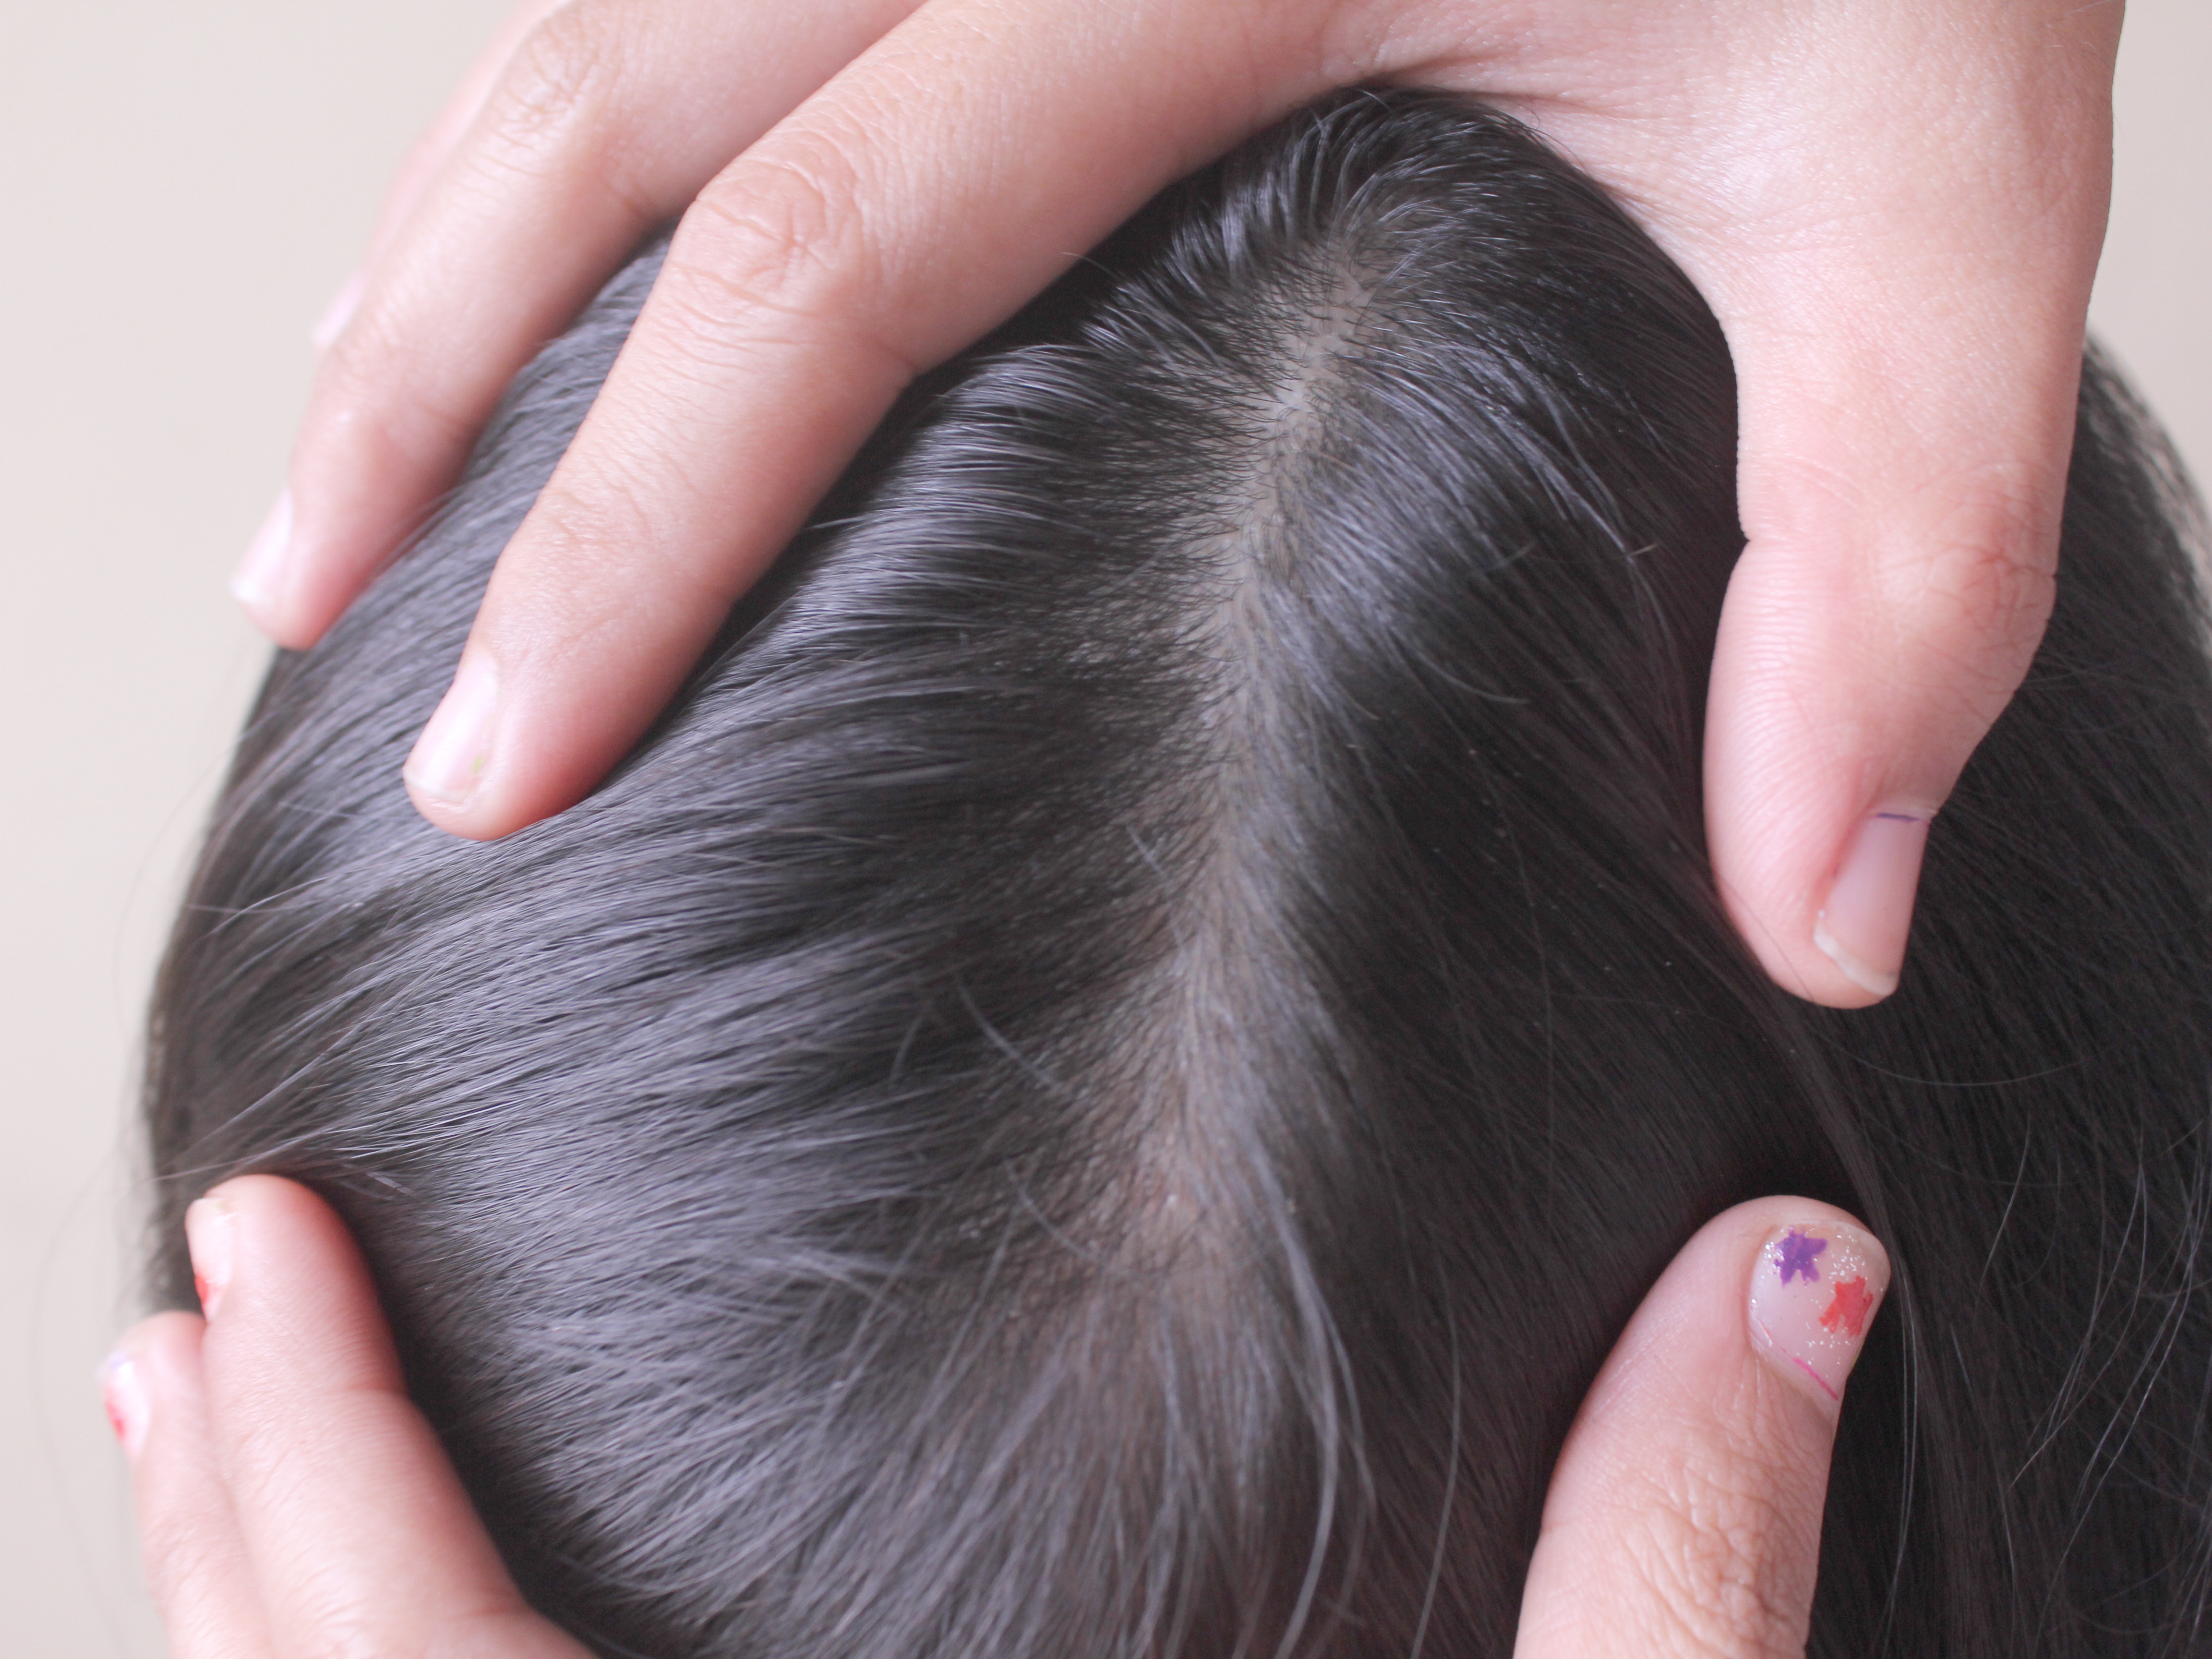 Head Lice Image Gallery | Pictures of Nits, Eggs, & Adult ...